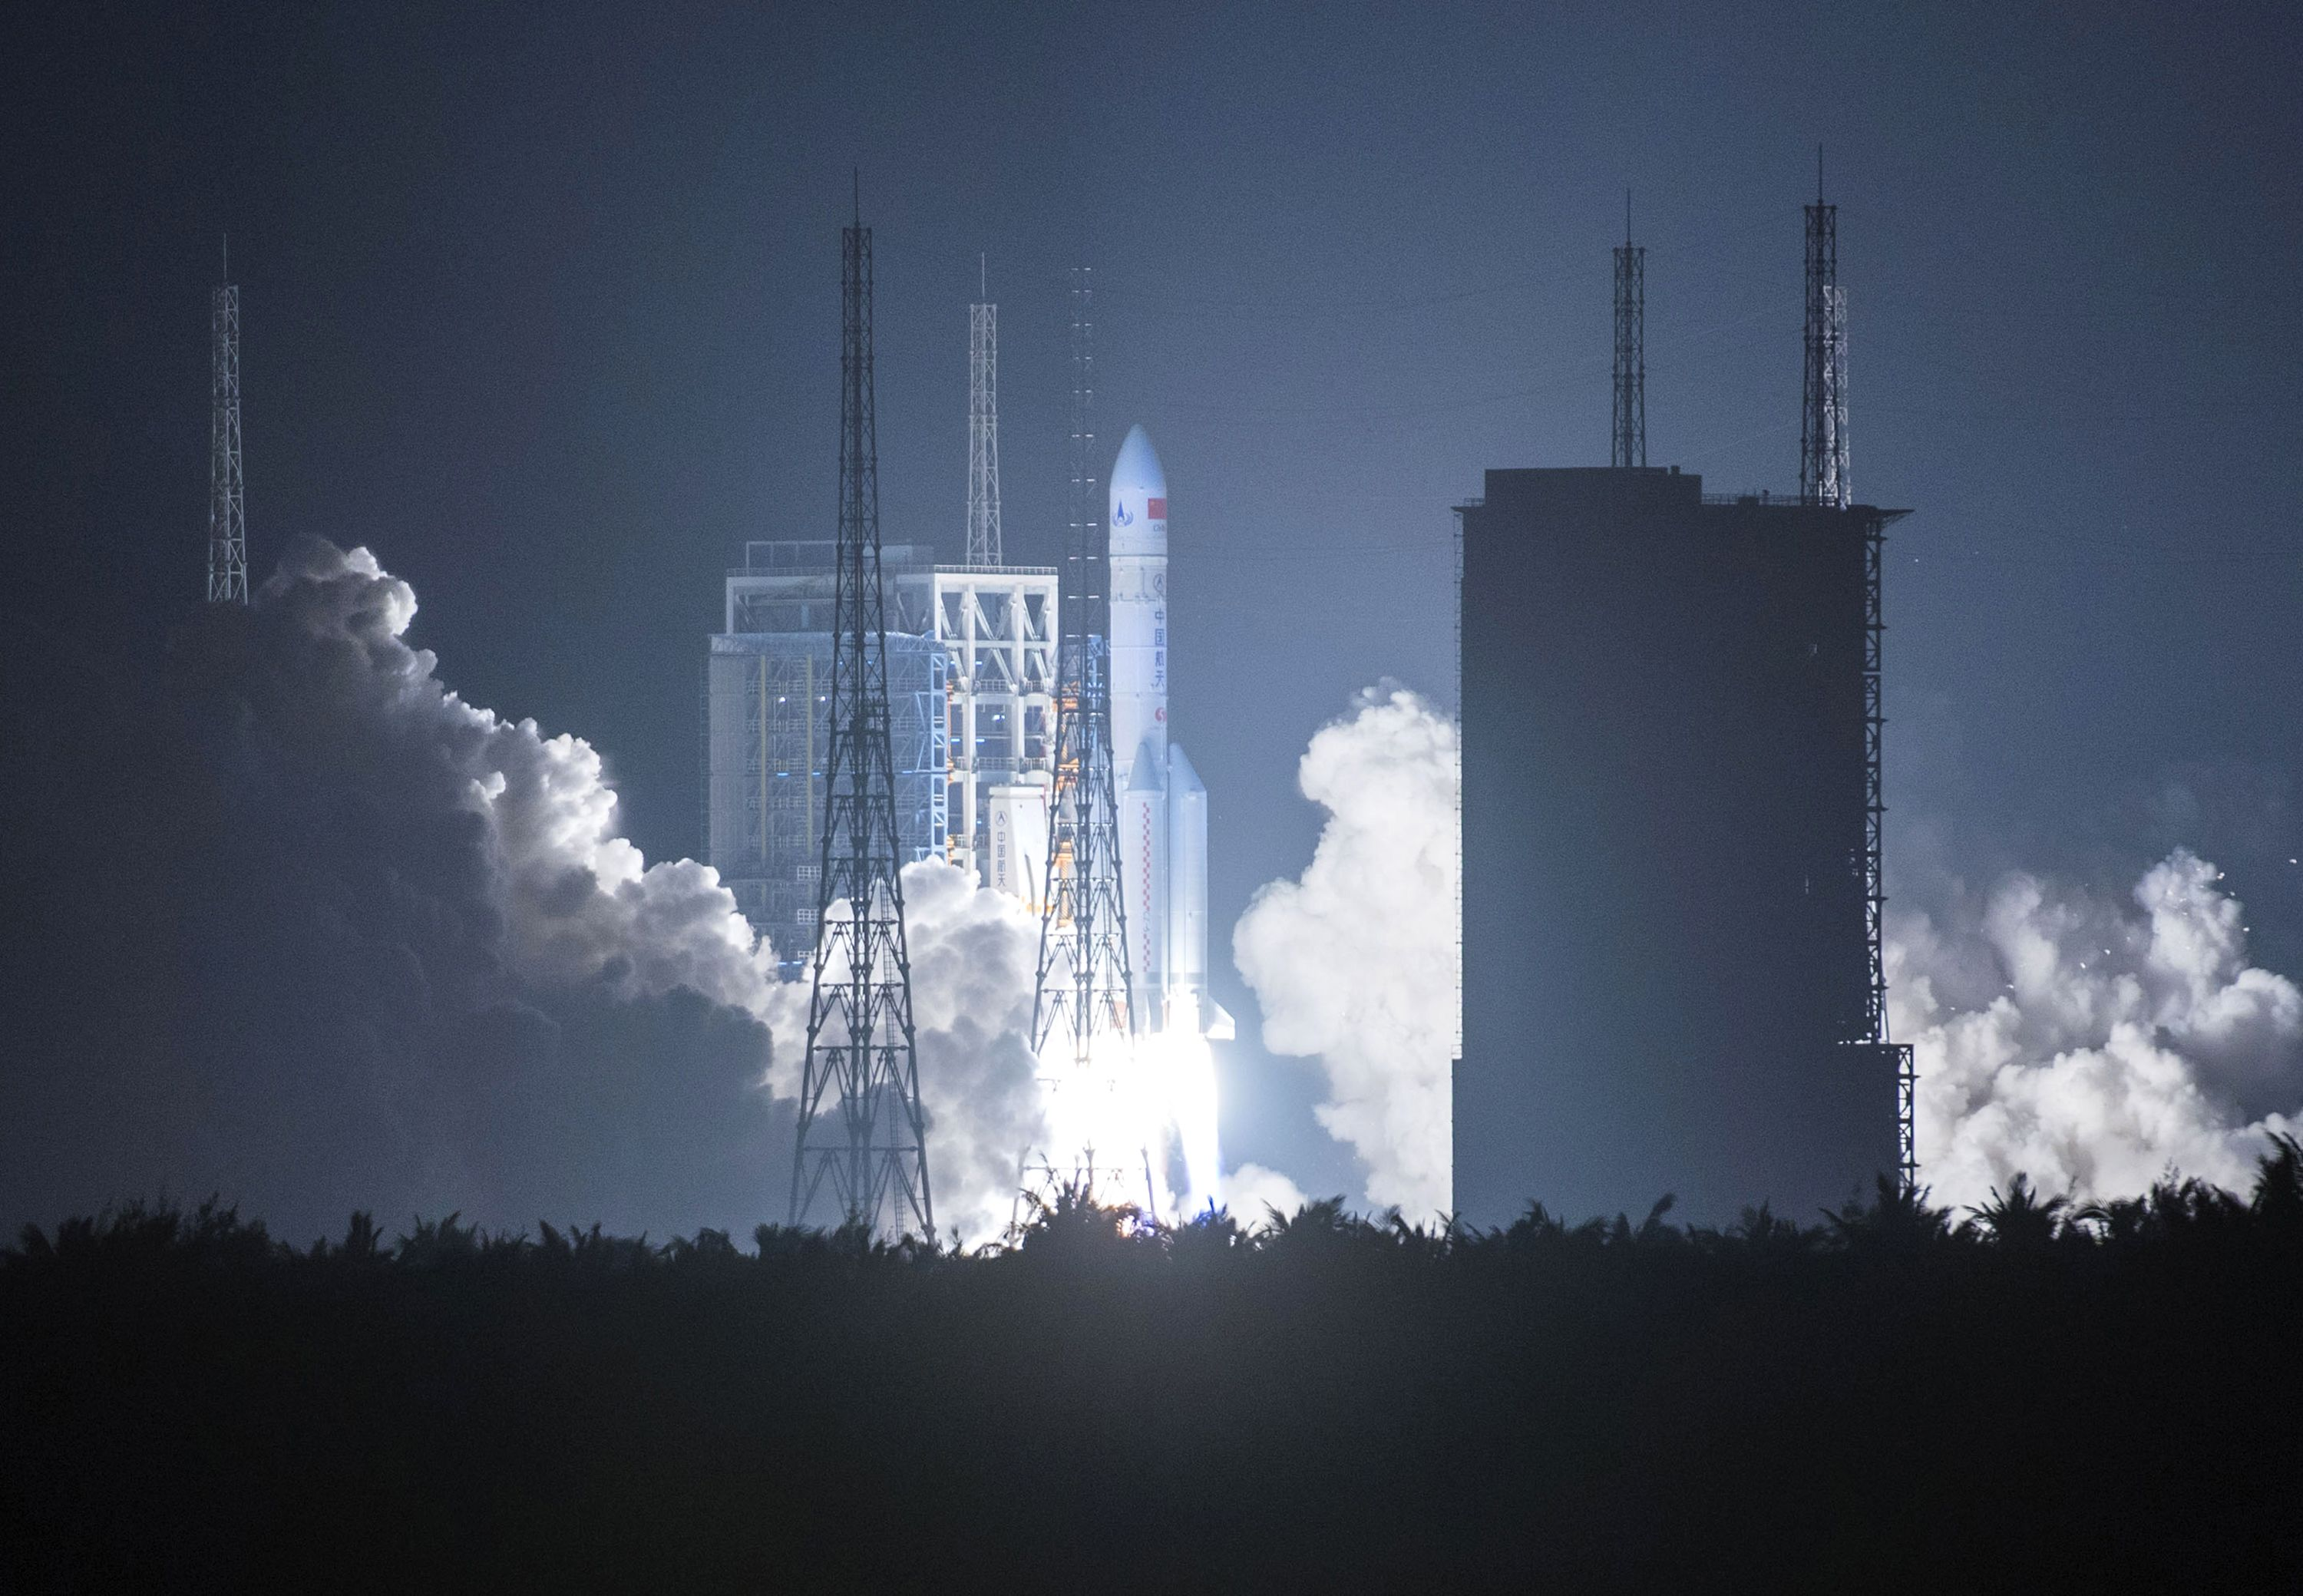 China's heavy-lift Long March-5 rocket blasts off from its launch center in Wenchang, in southern China's Hainan province, on Thursday. | AFP-JIJI